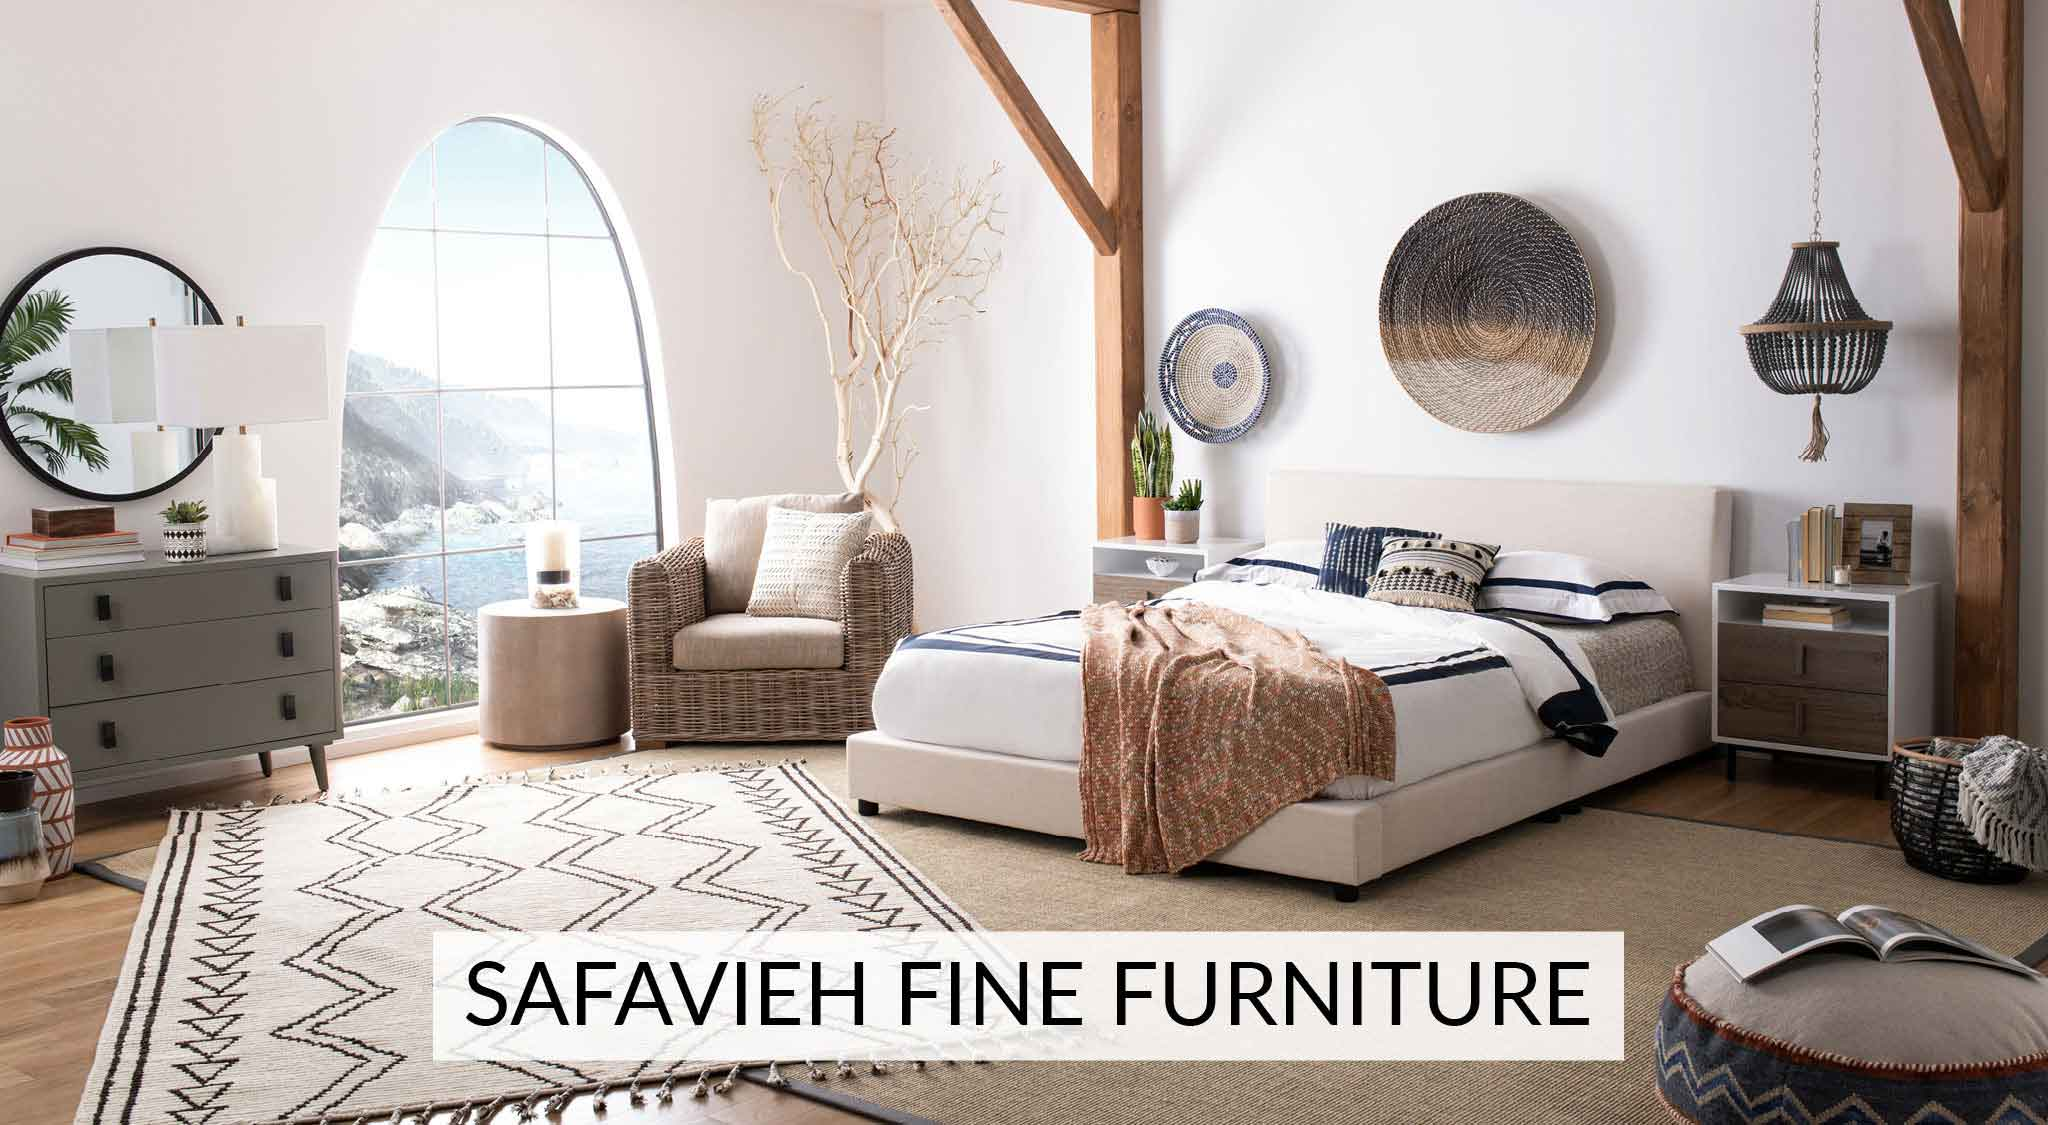 Safavieh Fine Furniture